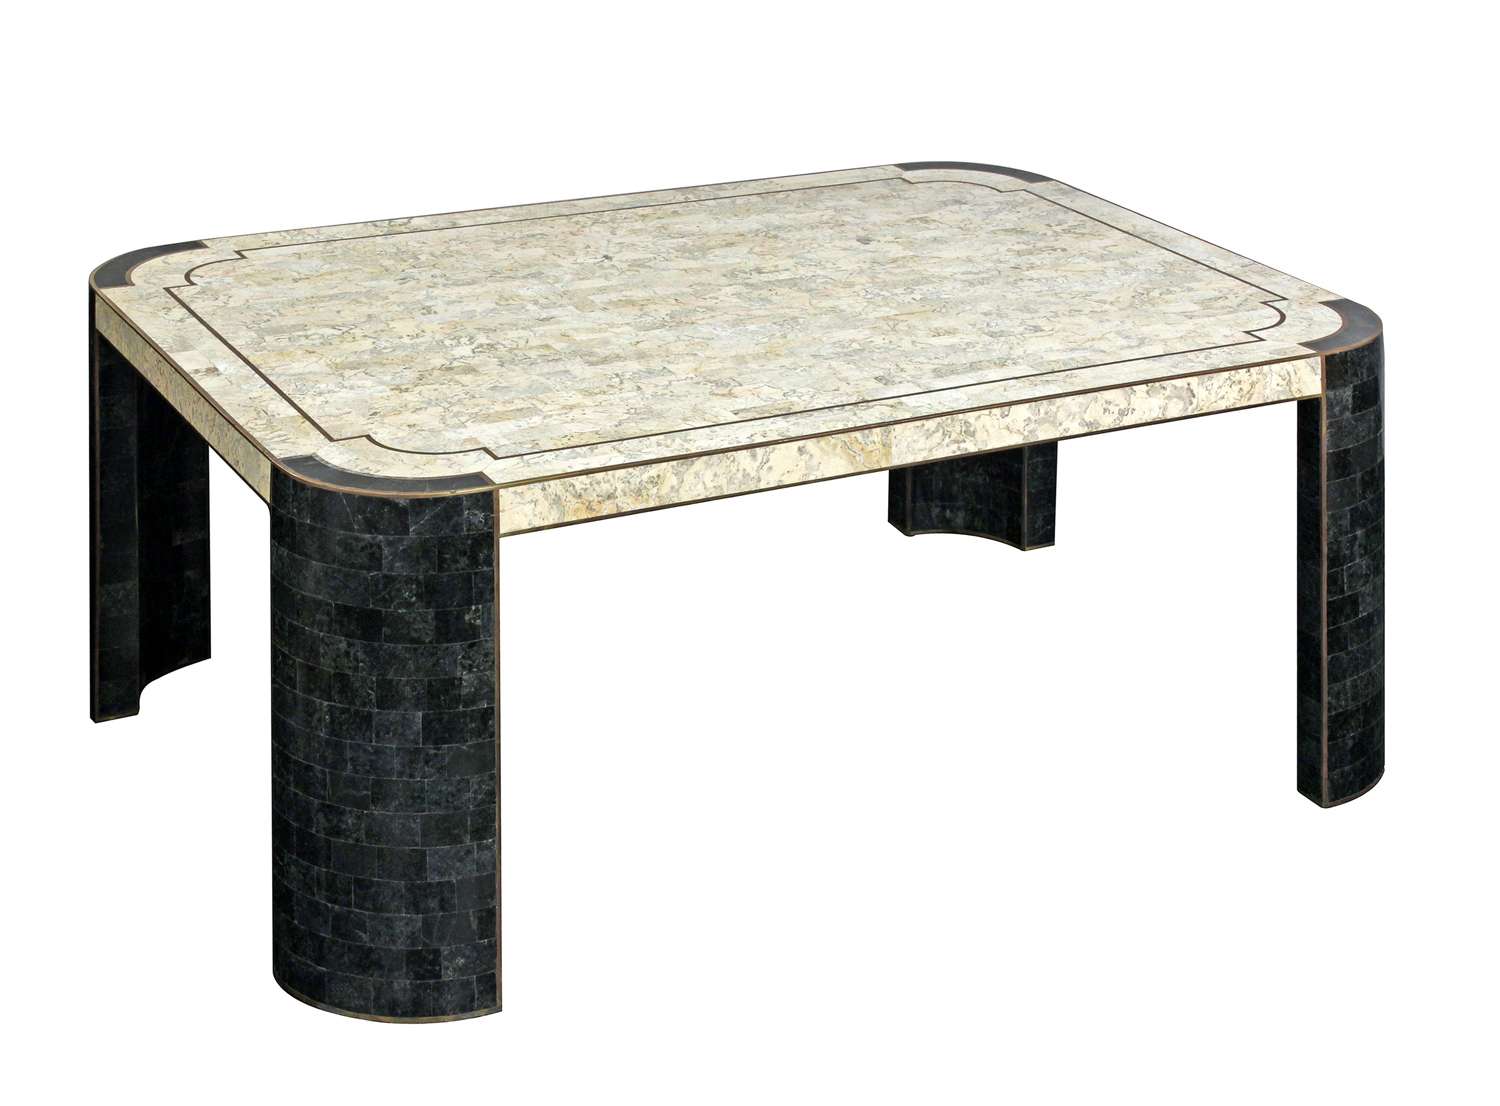 Maitland Smith 55 lt+drk tesstone coffeetable218 hires main 3.jpg